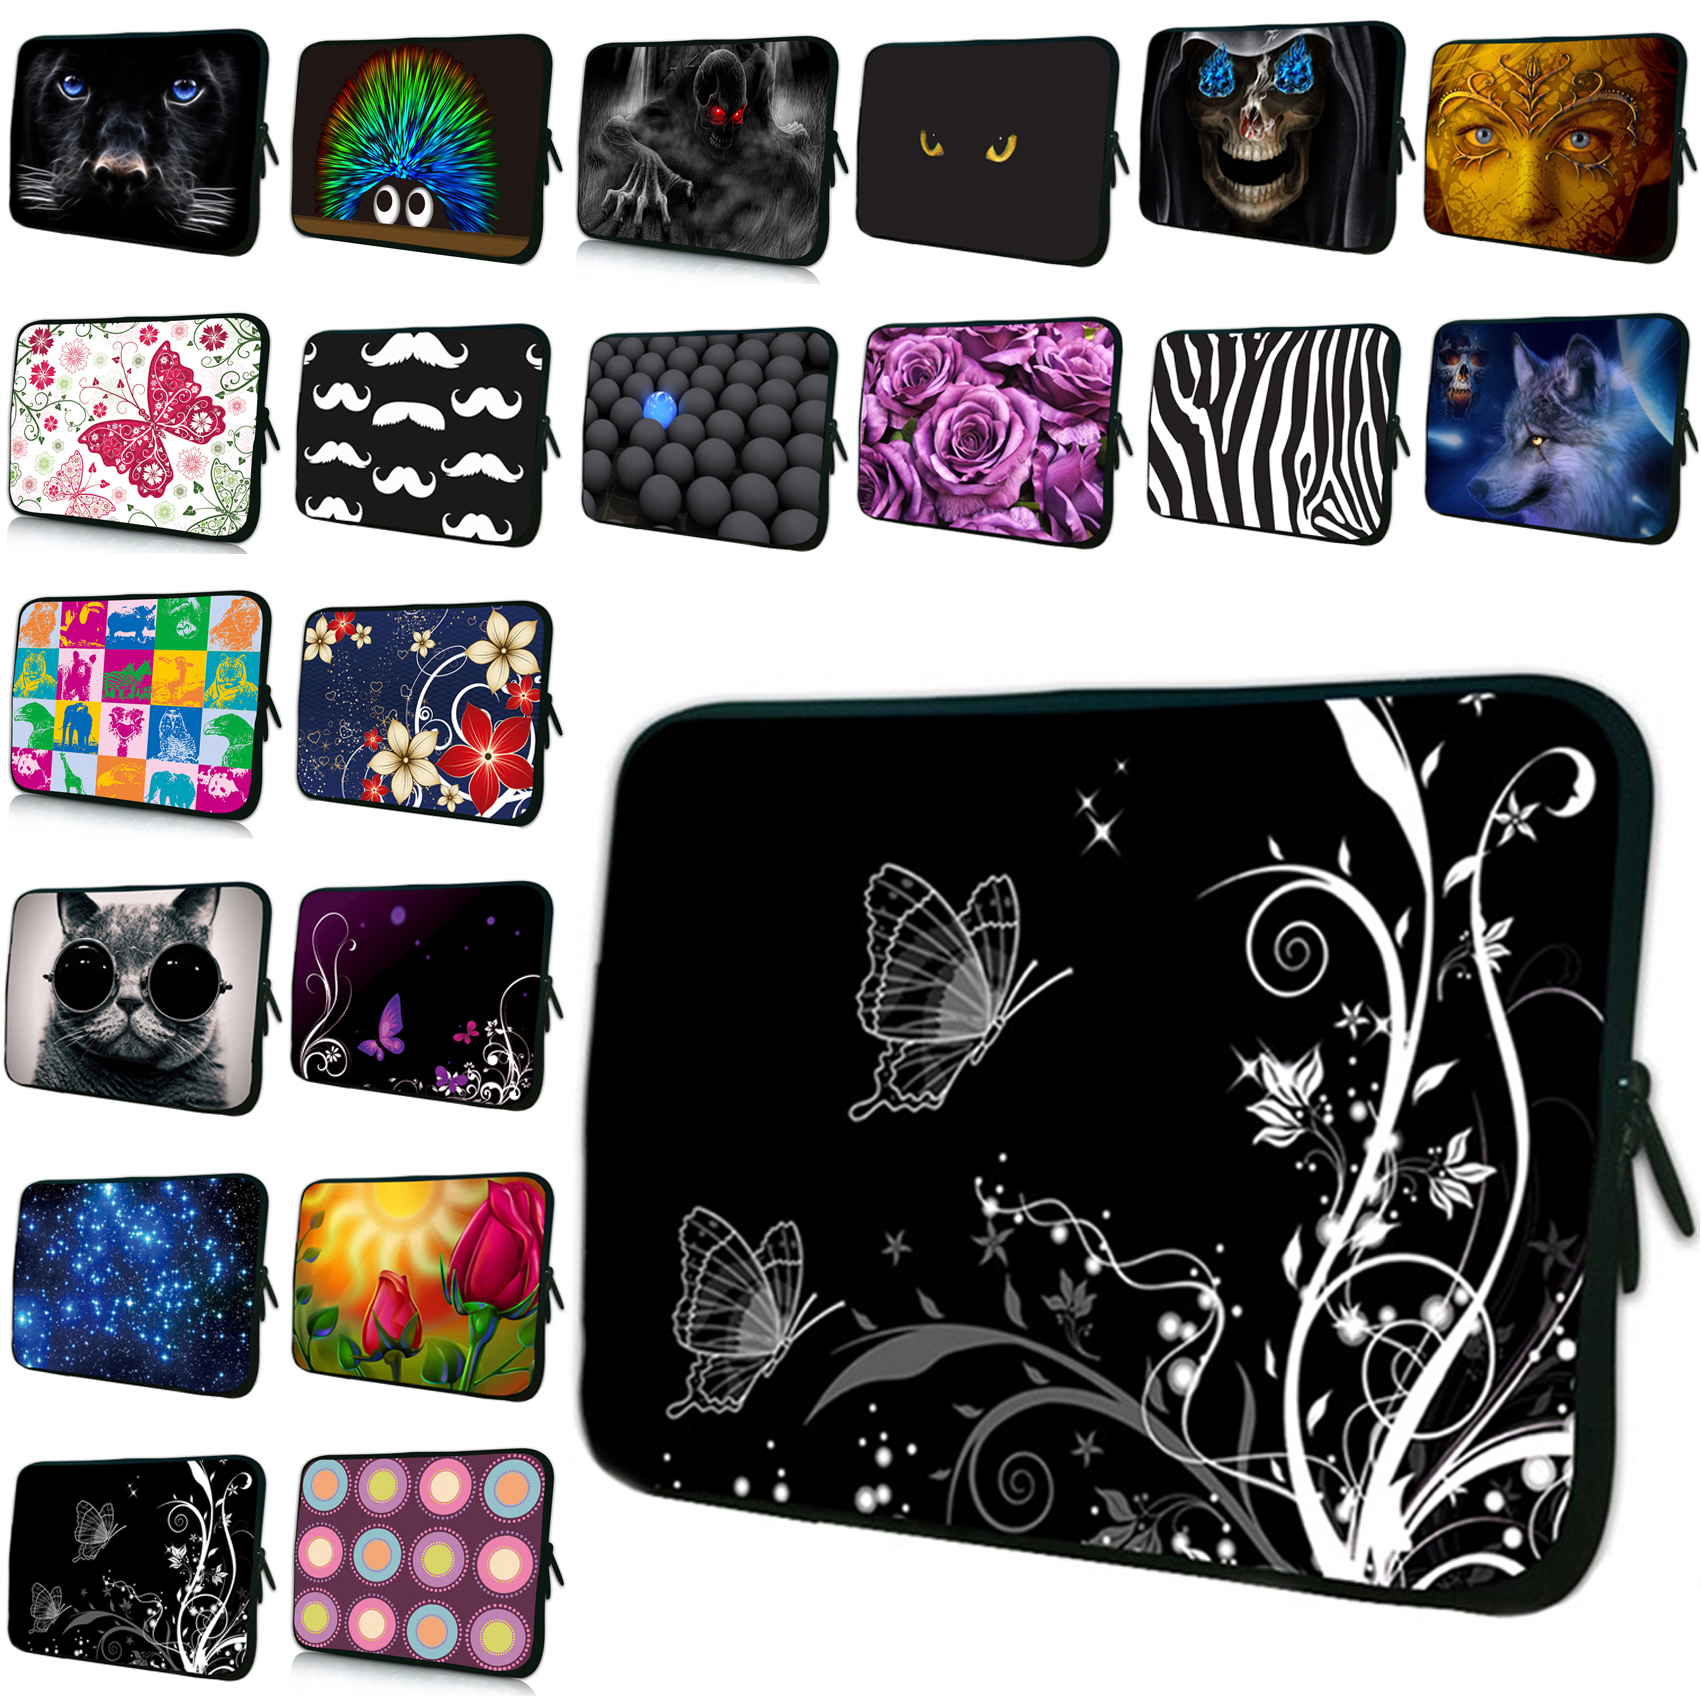 Girl's Fashion E-book Tablet PC Cover Cases 7 8.0 7.9 7.7 inch Neoprene Soft Tablet Notebook Bags For Xiaomi PC Huawei Teclast(China (Mainland))